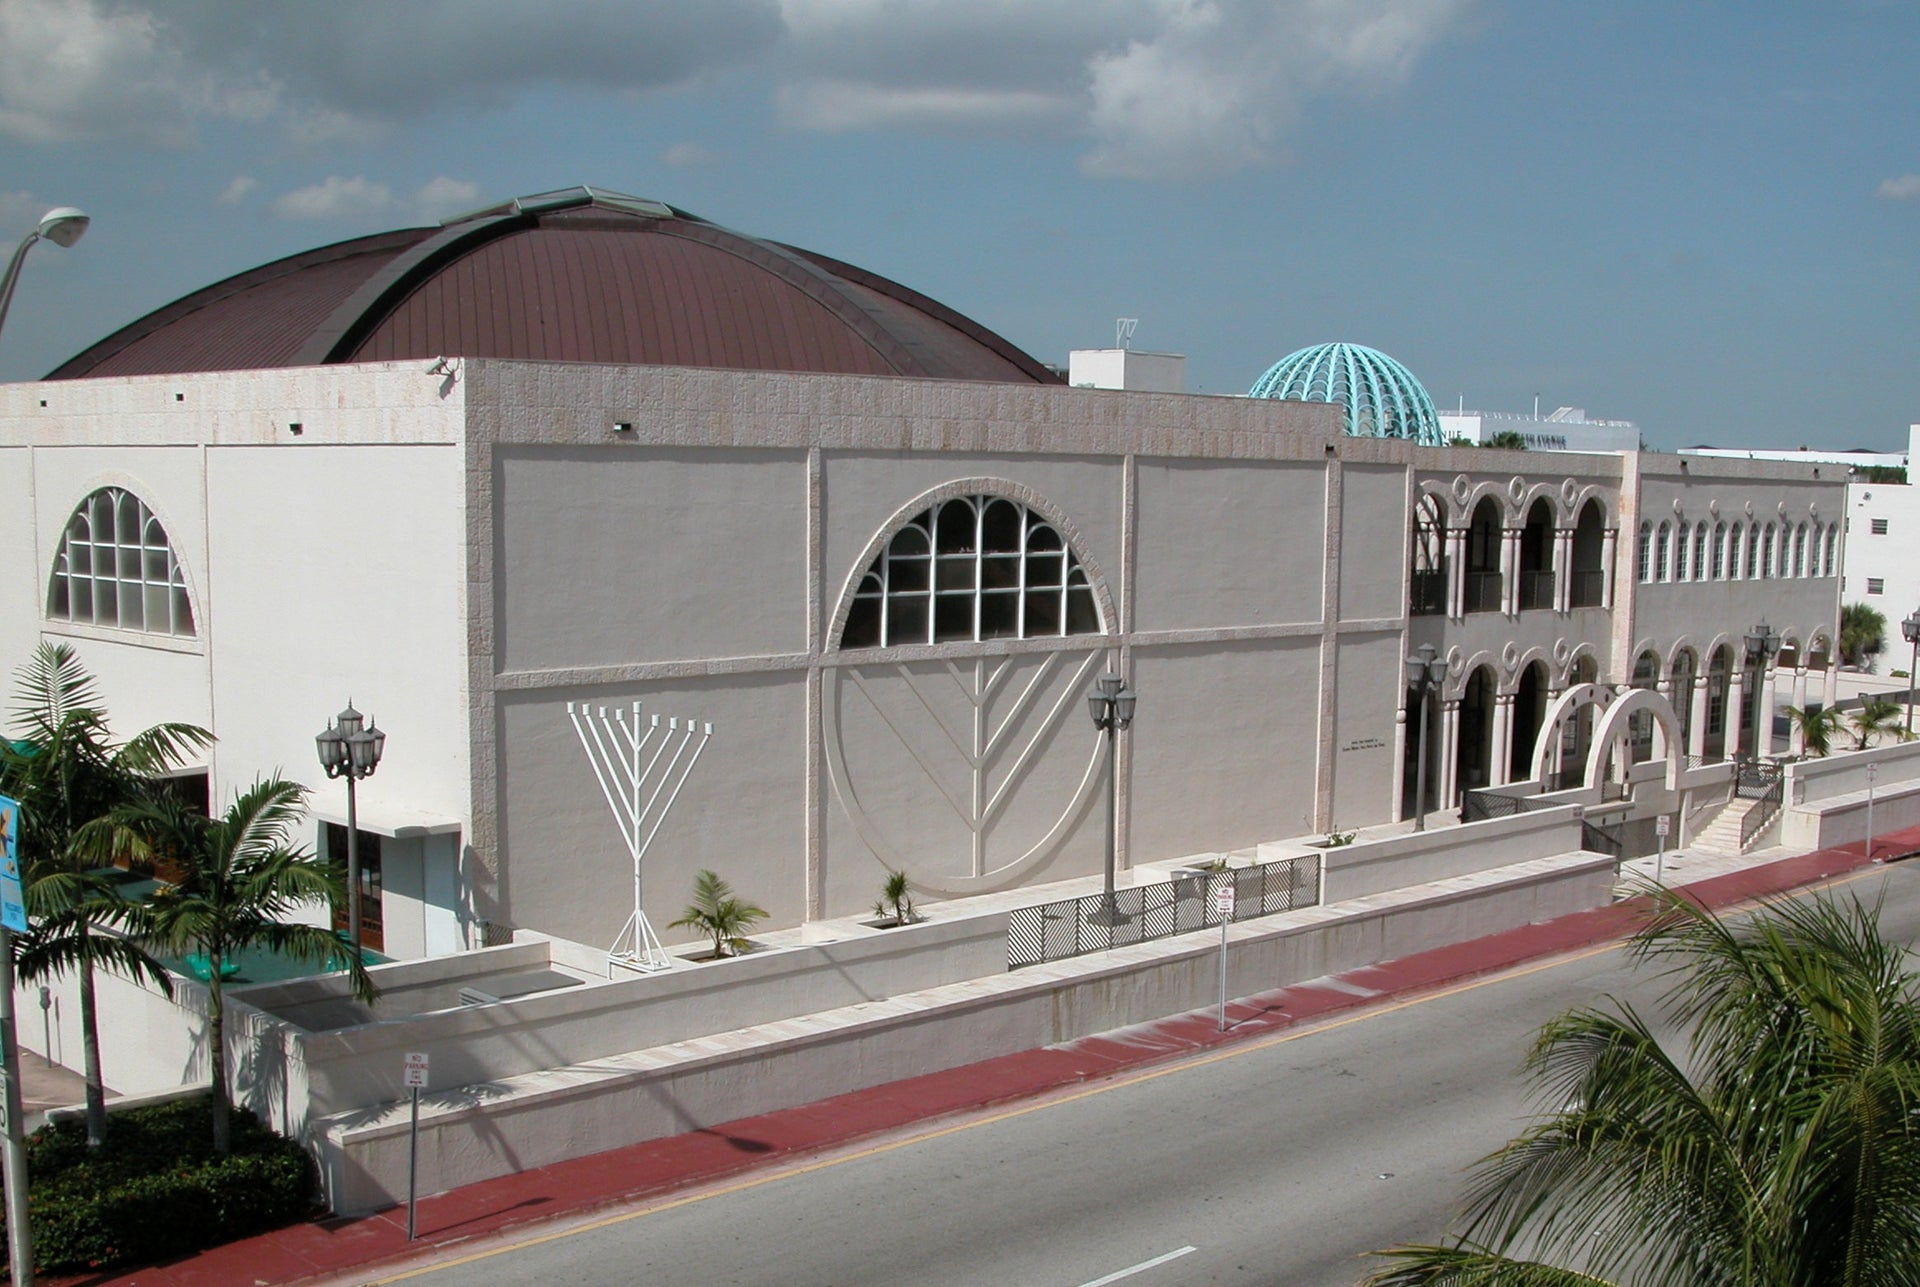 The Shul in Miami. After 10 weeks on hold, it reopened for Shavuot and Shabbat services on May 28-29.